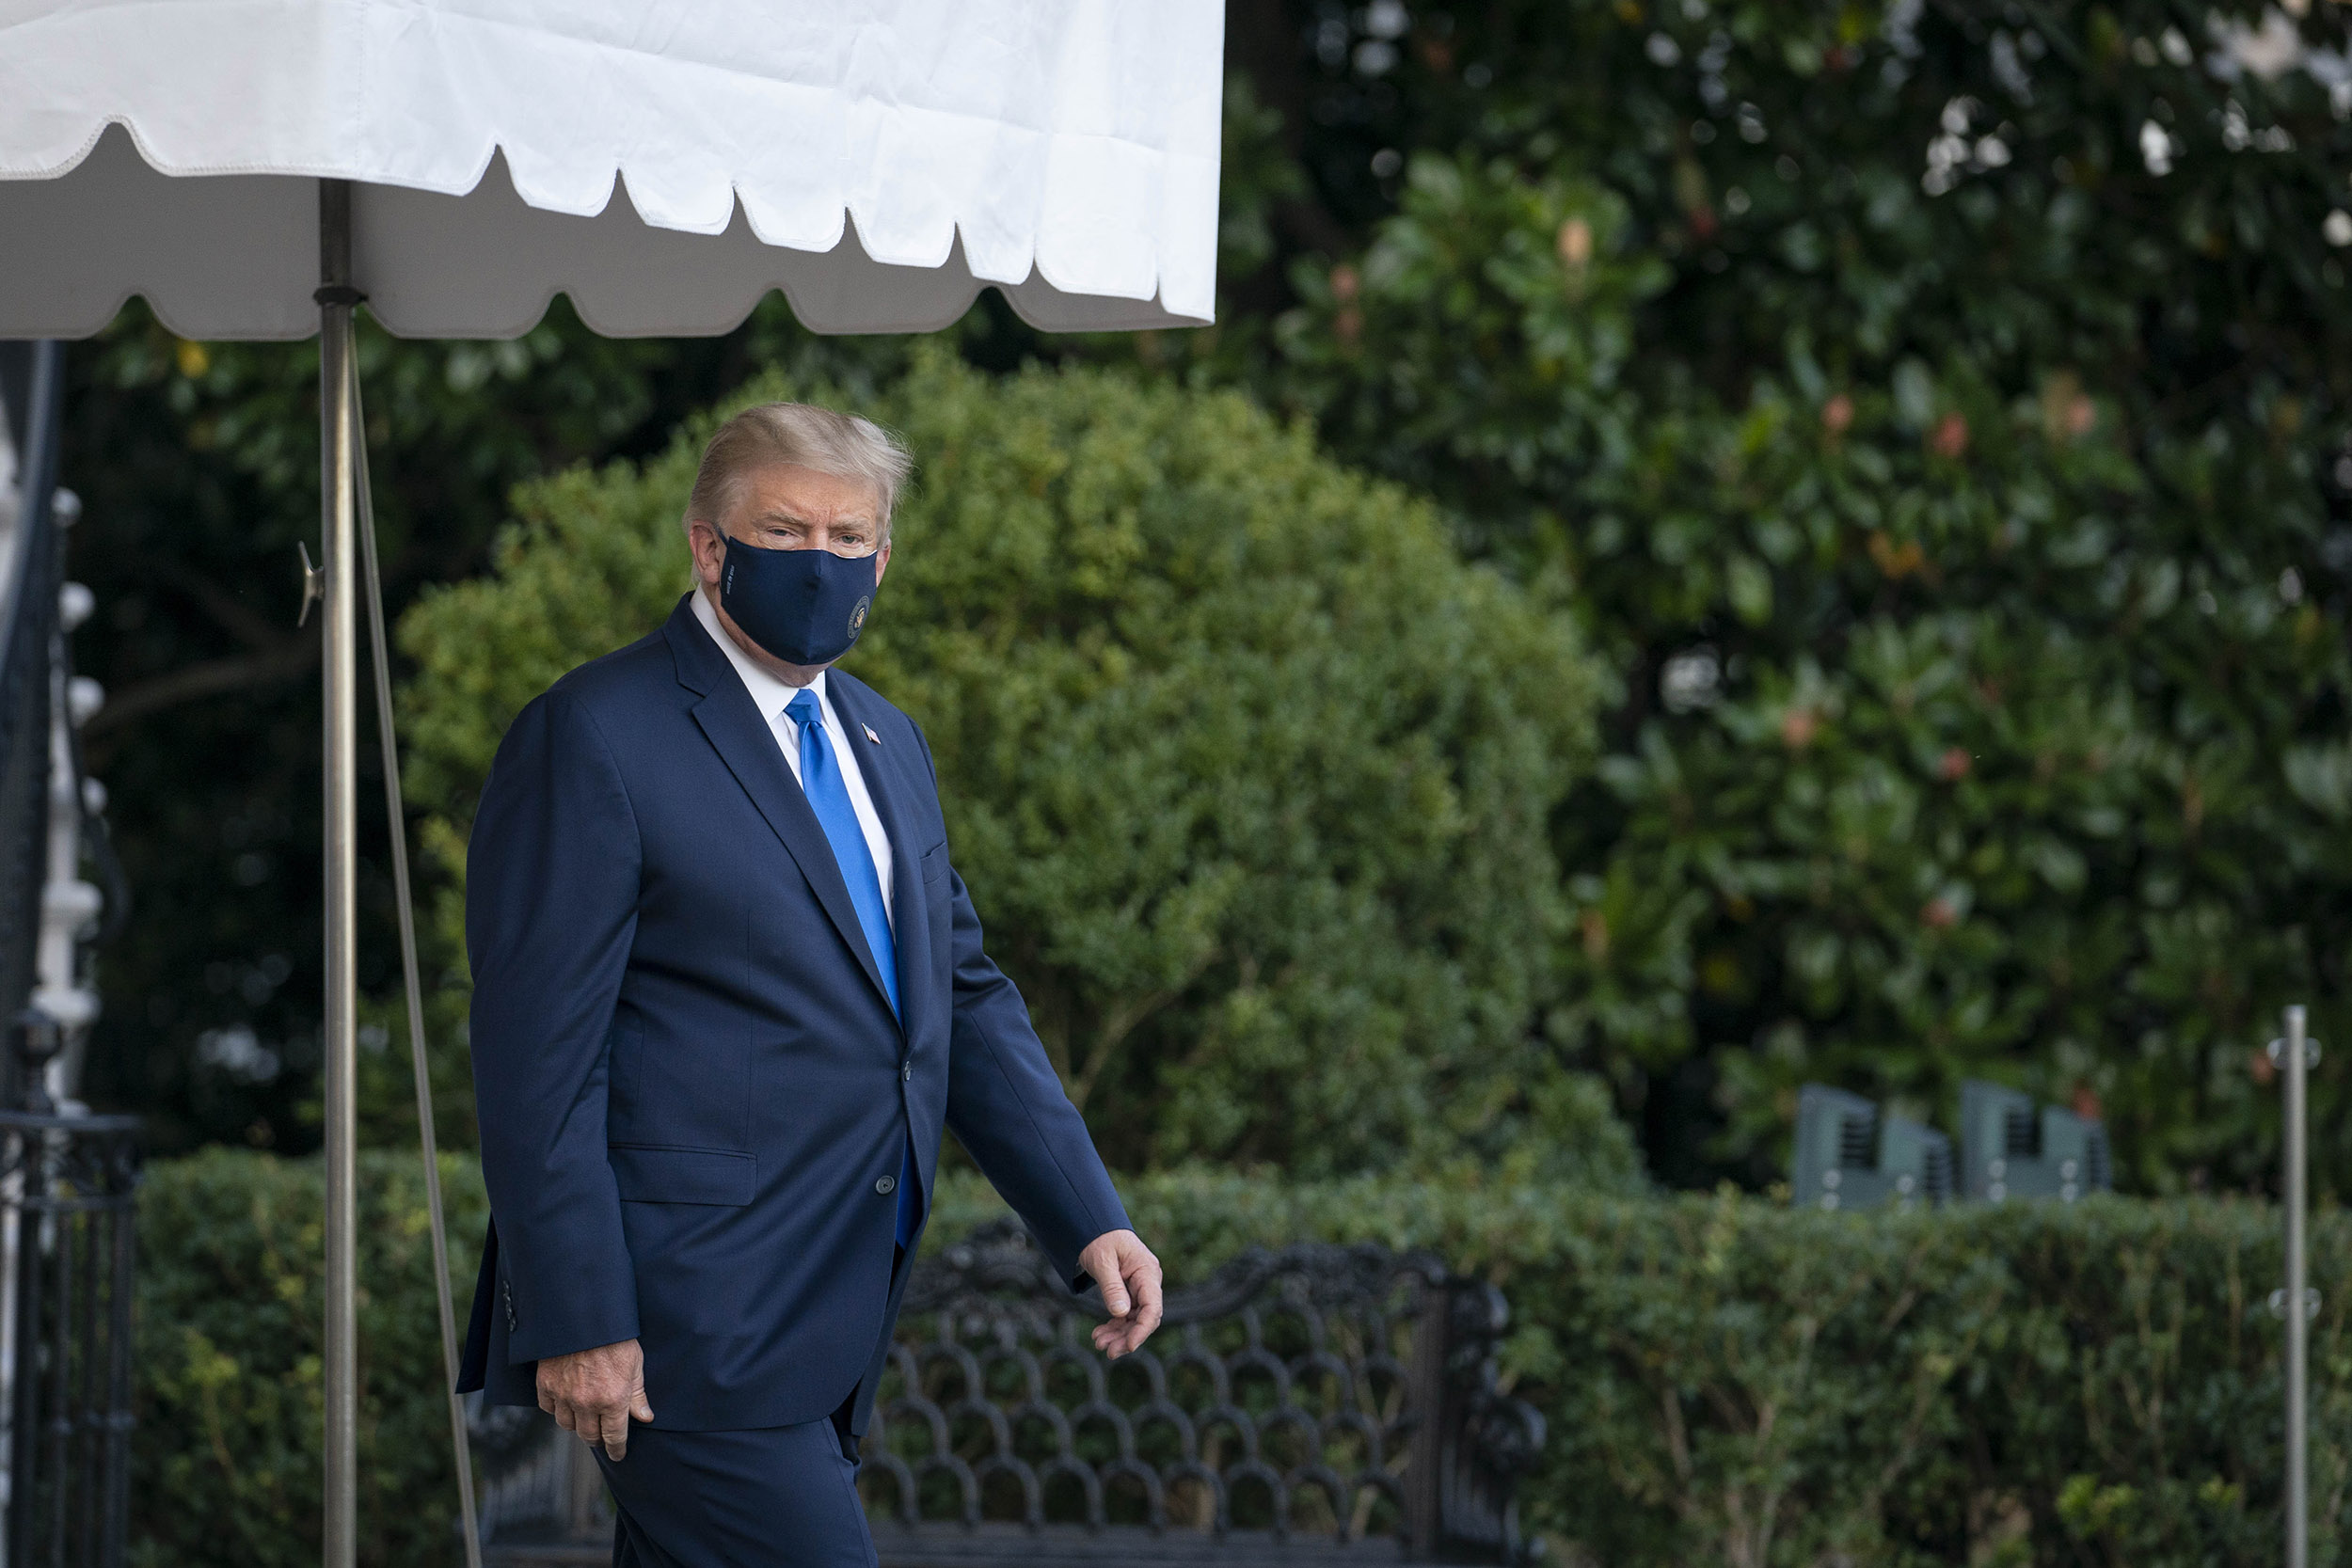 President Donald Trump wears a mask while walking to the South Lawn of the White House before boarding Marine One in Washington, D.C., U.S., on Friday, Oct. 2, 2020.